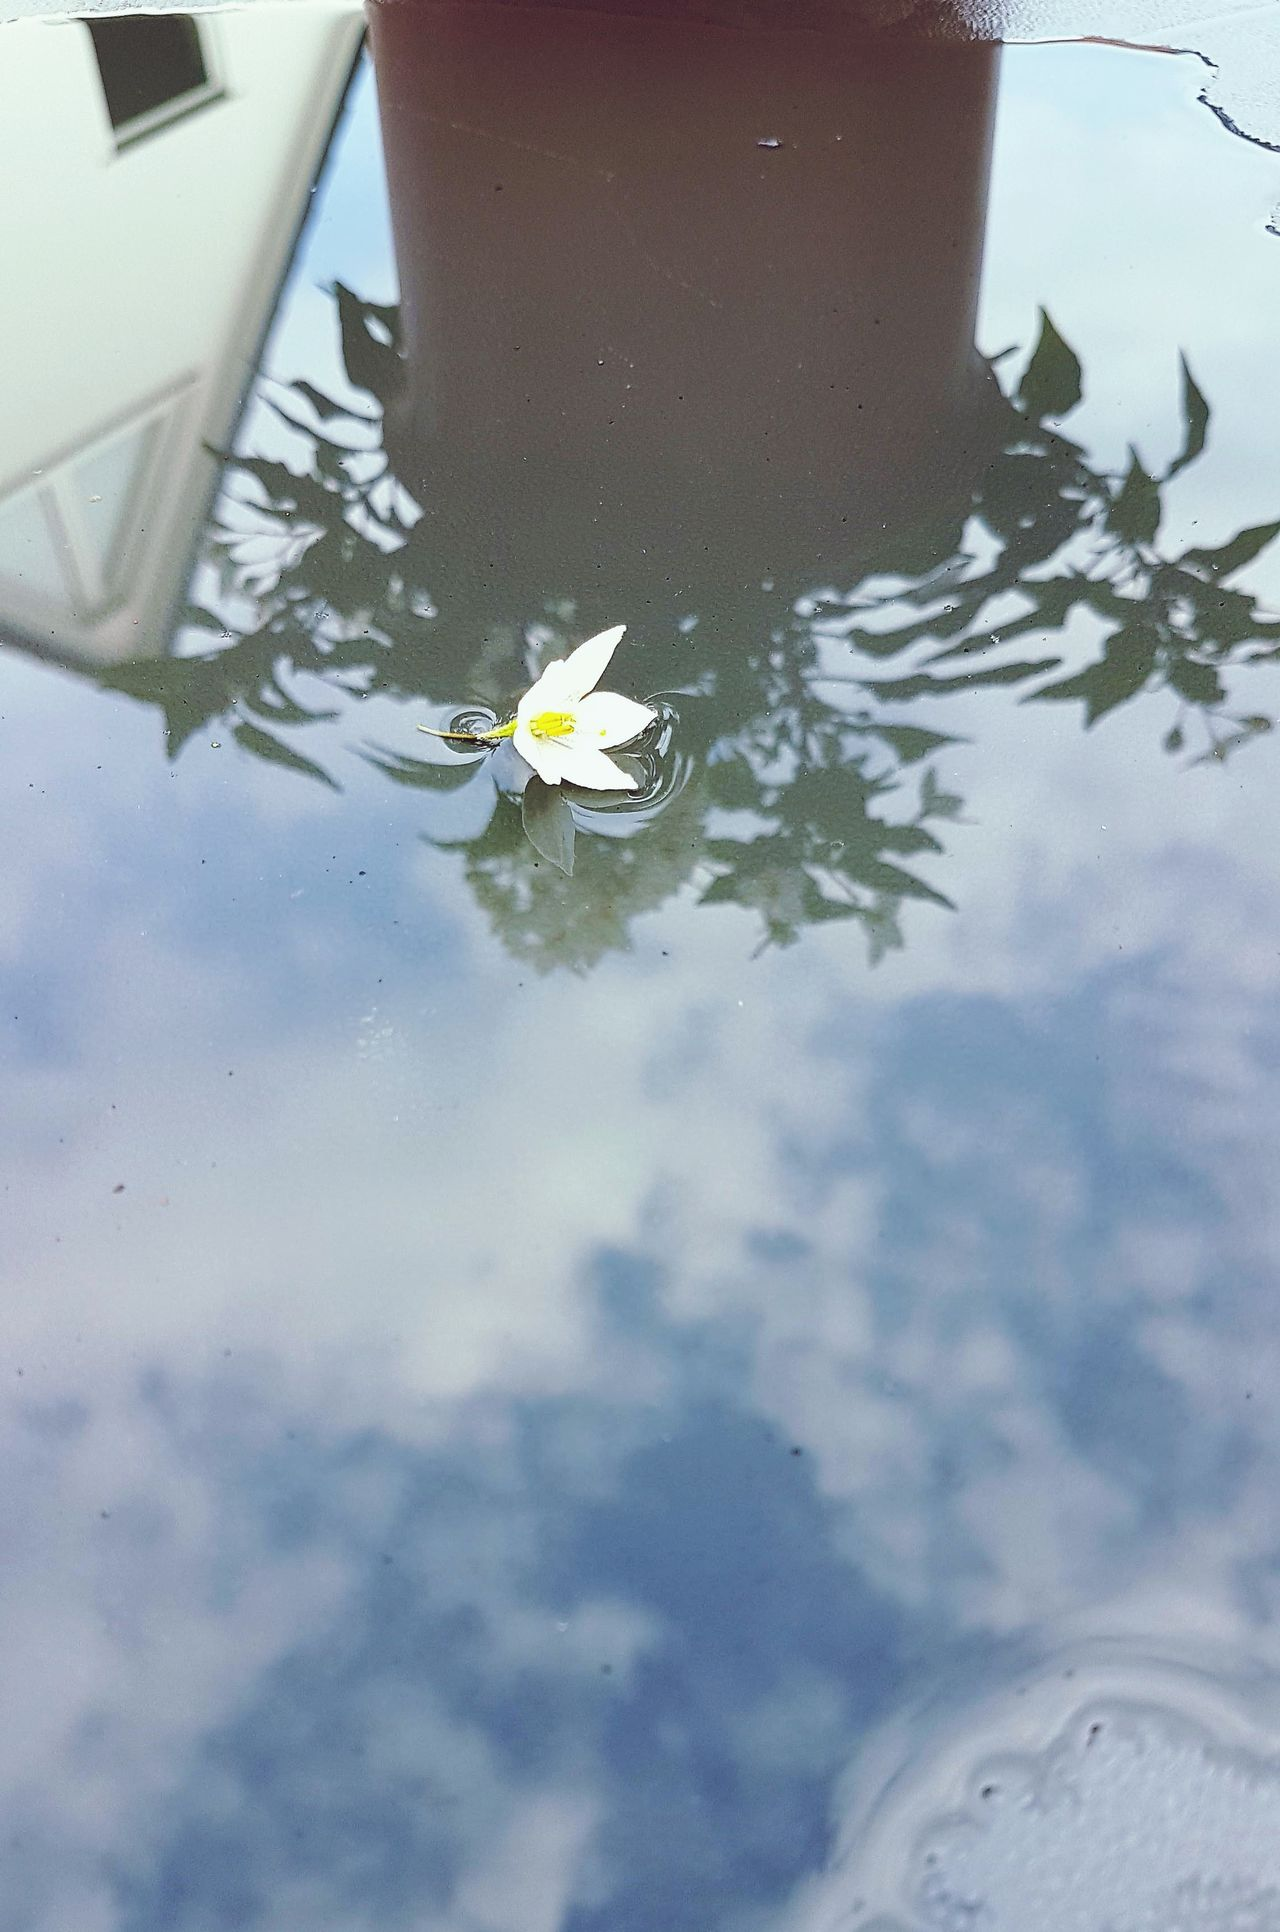 Water Swimming High Angle View Day Floating On Water Outdoors Garden Photography Flower Flower Head Blossom White Color Fragility Springtime Freshness Water Reflection Beauty In Nature After The Rain Lying On A Table Nature Jasmine Flower Sky Reflections On Water